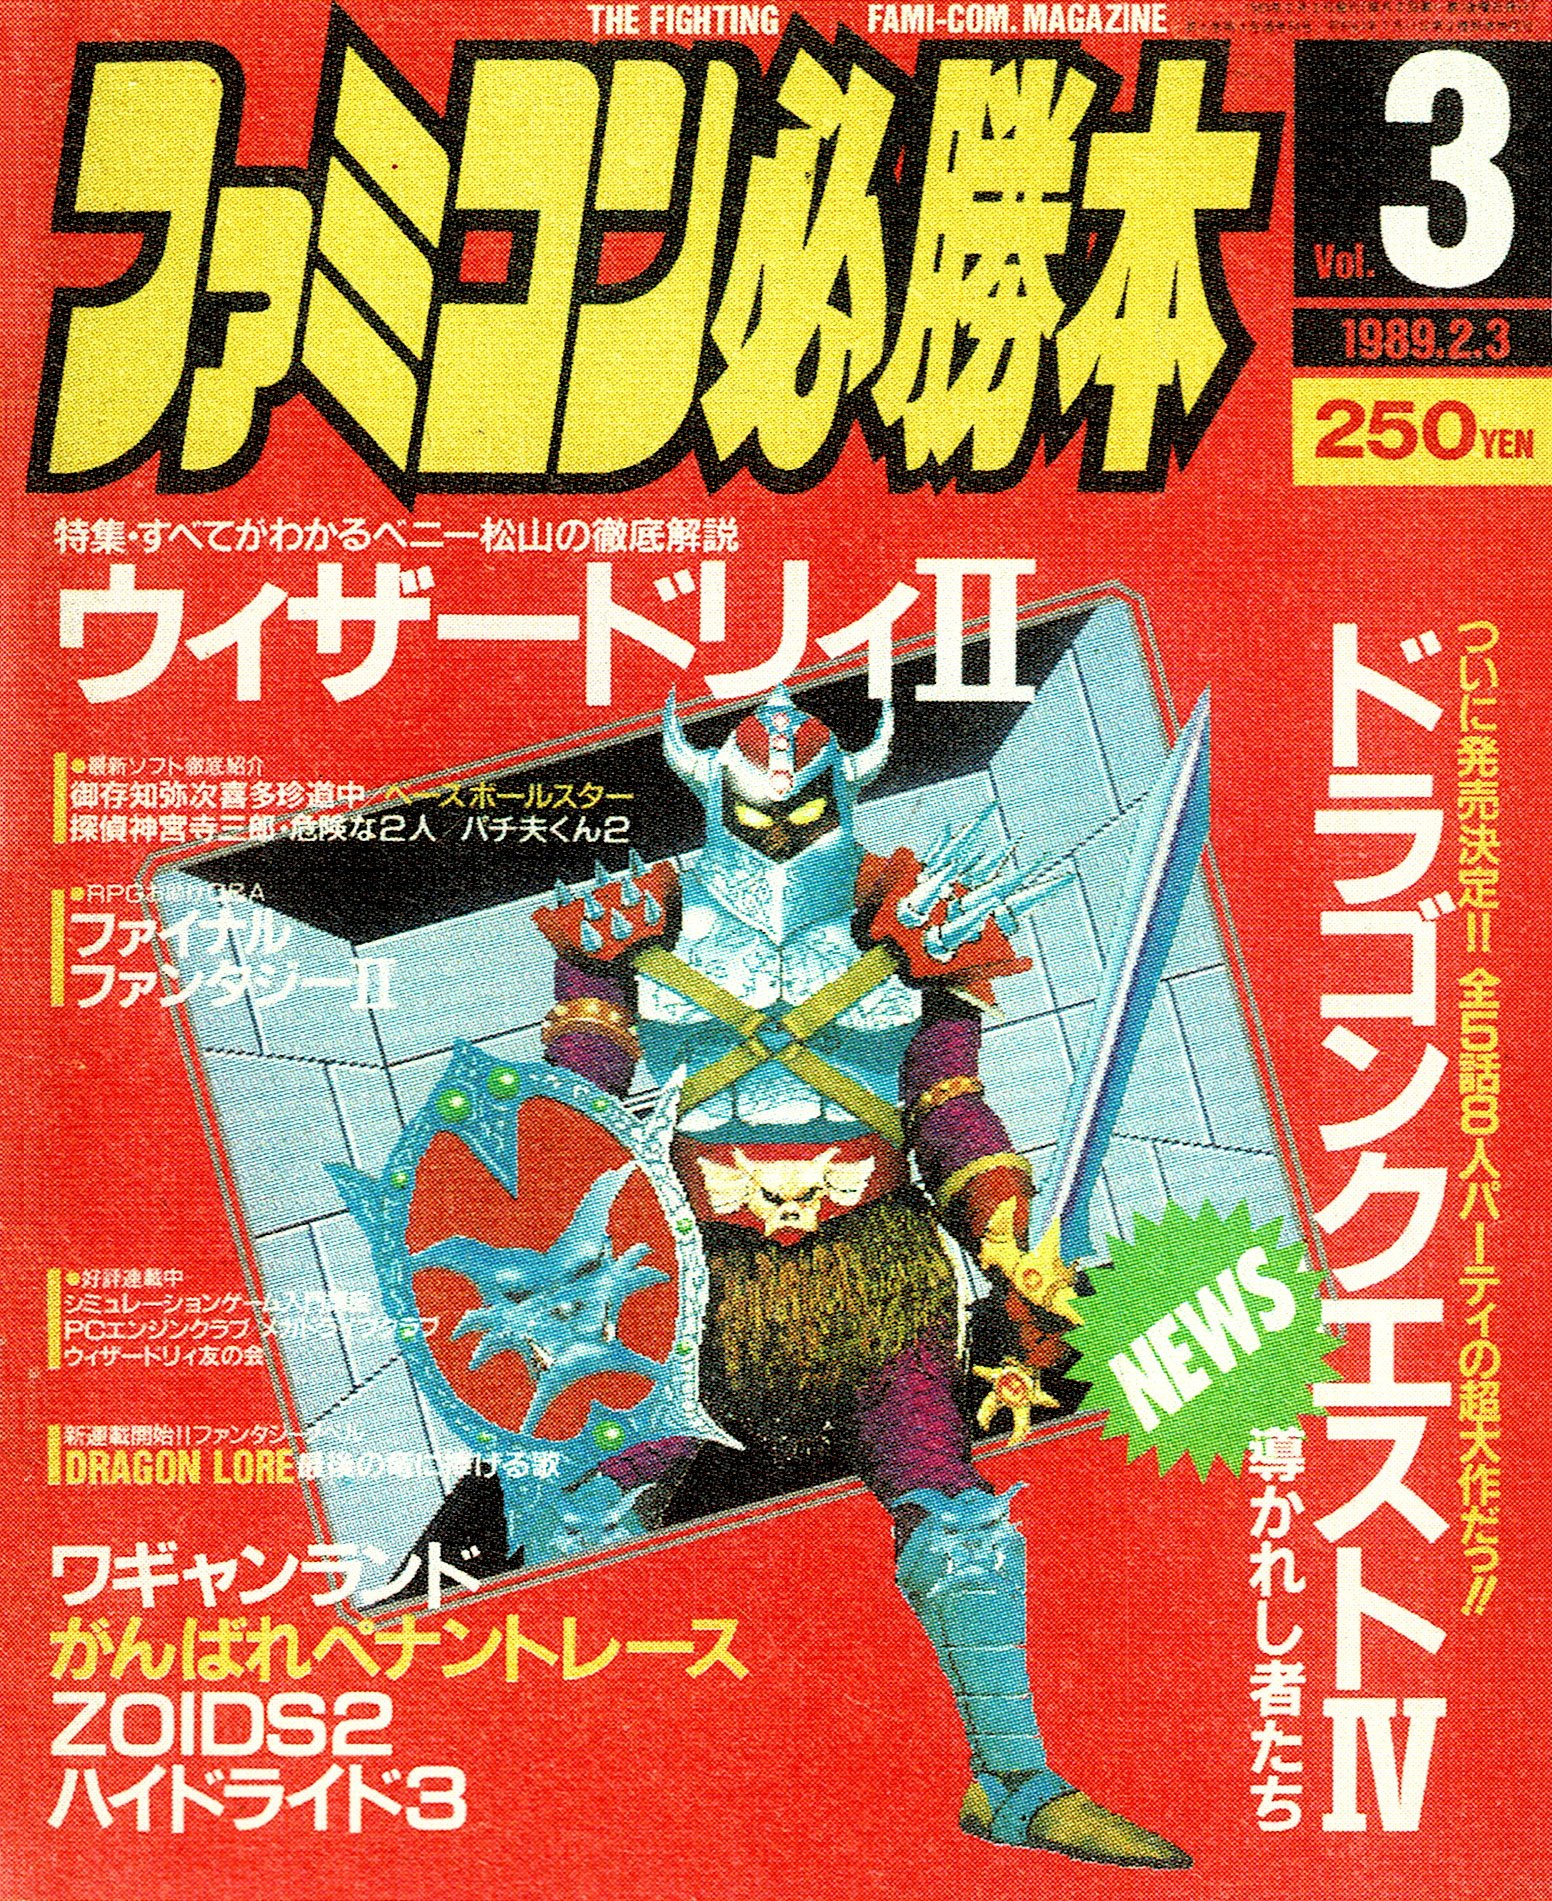 Famicom Hisshoubon Issue 064 (February 3, 1989)